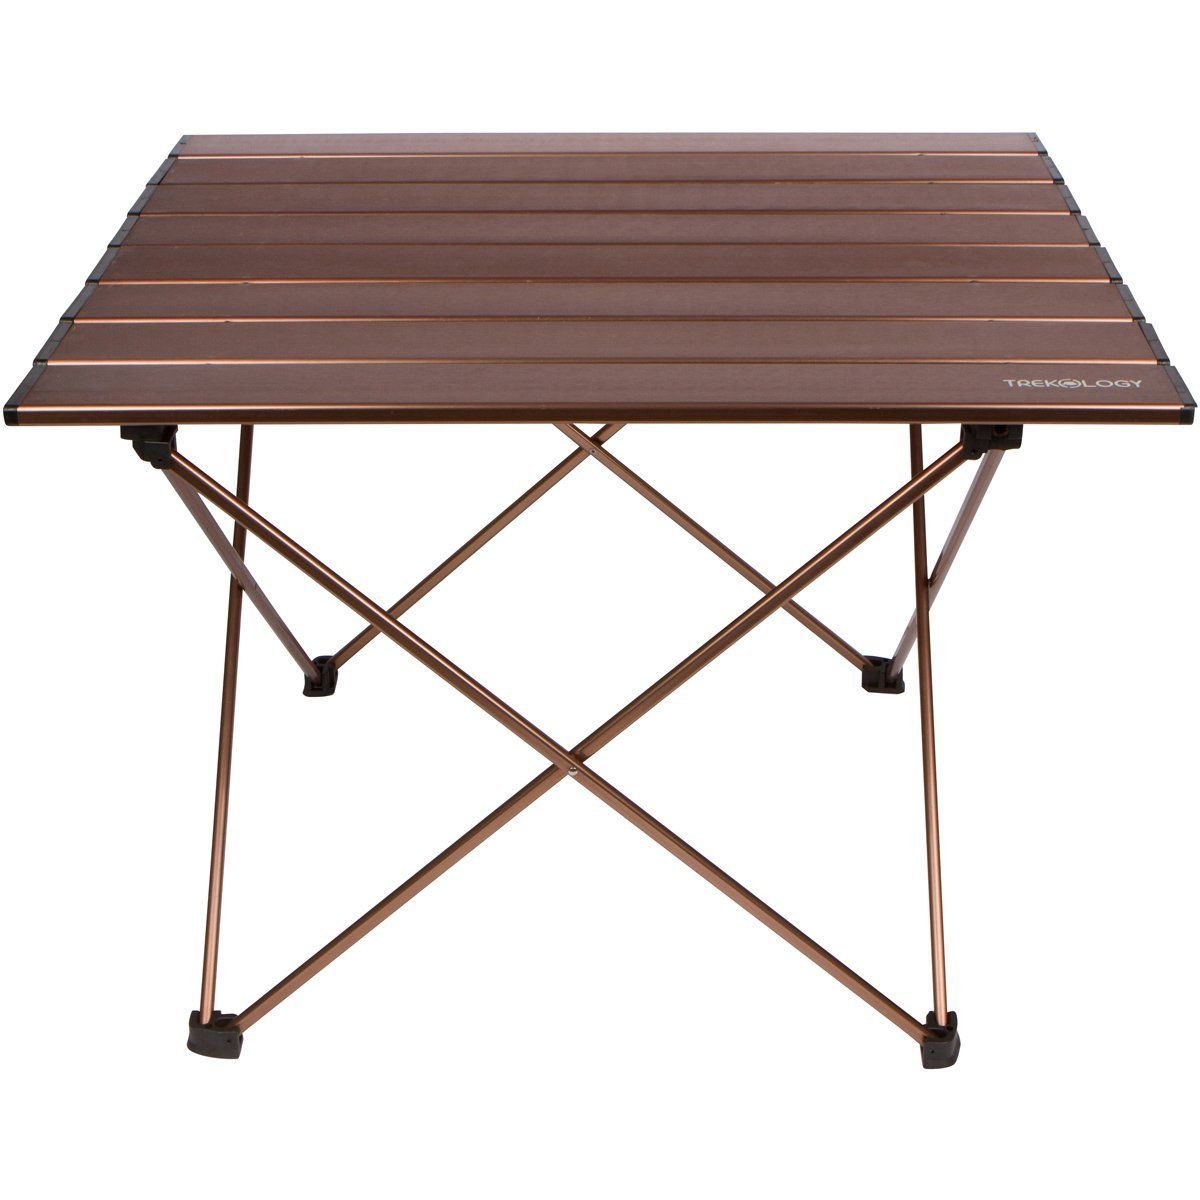 Trekology Camping Beach Table With Aluminum Table Top Portable Folding Table  In A Bag For Beach Picnic Camp Patio Fishing RV Indoor Brown Color ** Click  ...